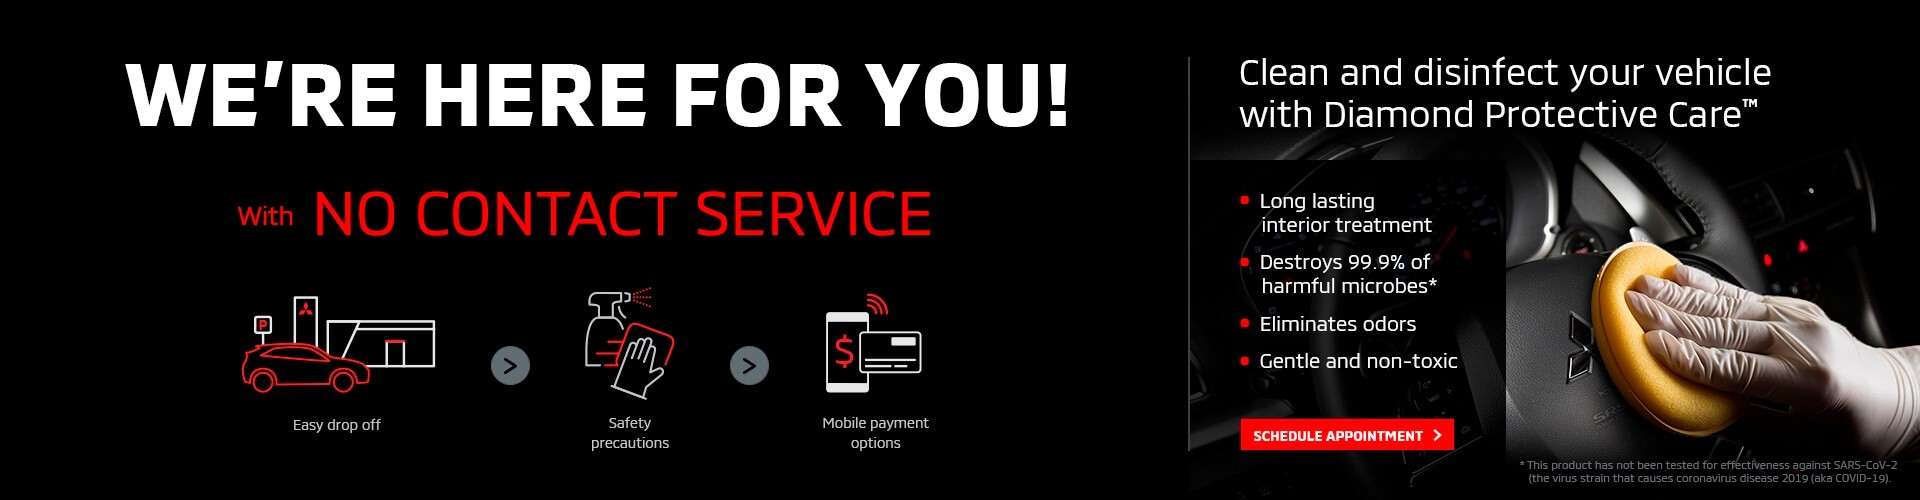 We are here for you! No contact service available.